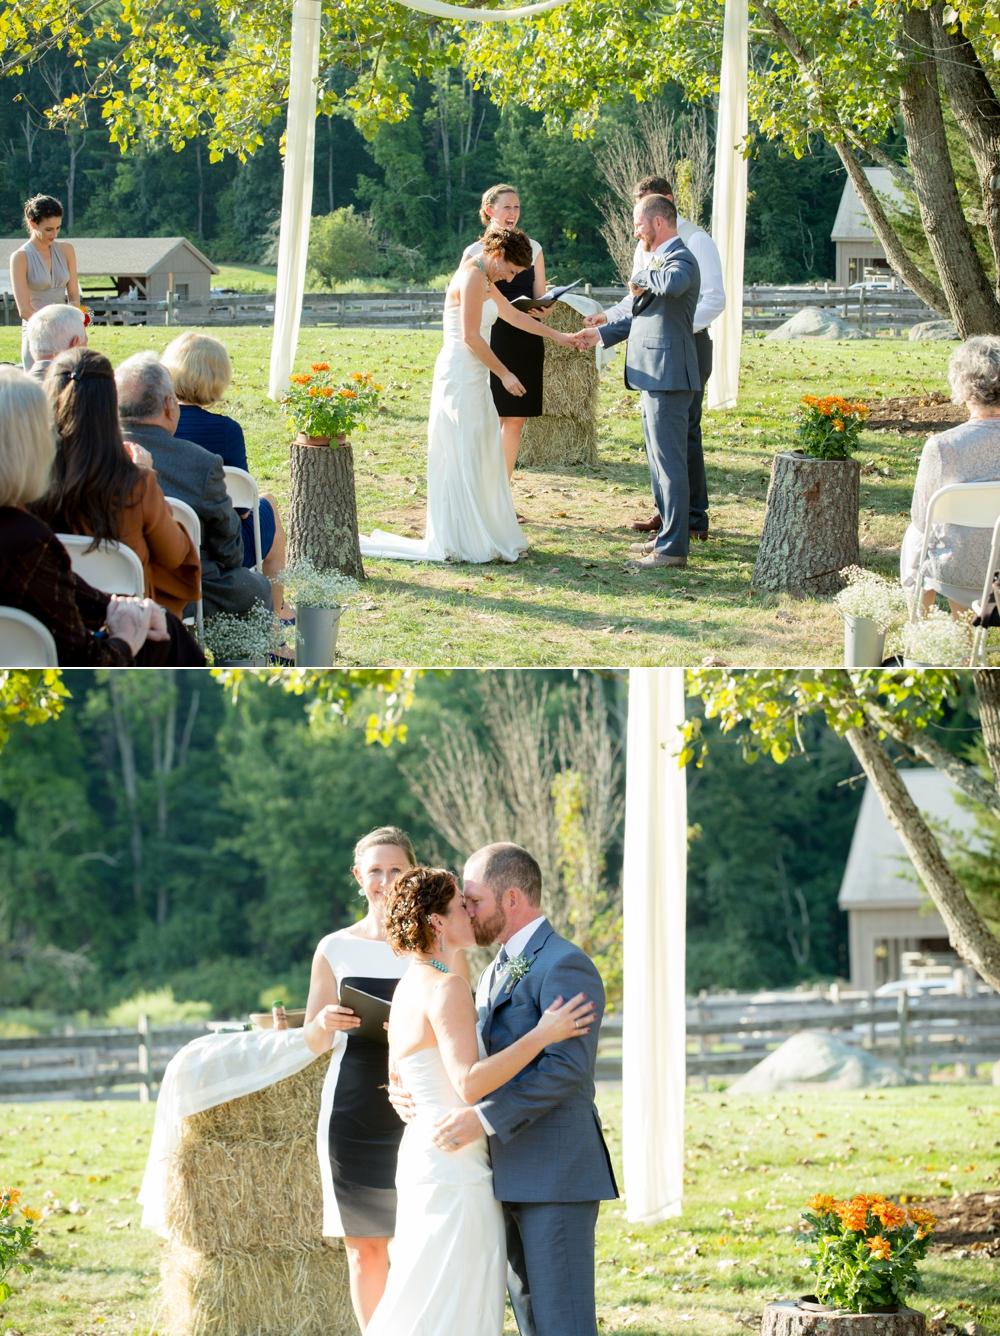 BearSpotFarm_Wedding_Nikki&Alex_0002.jpg